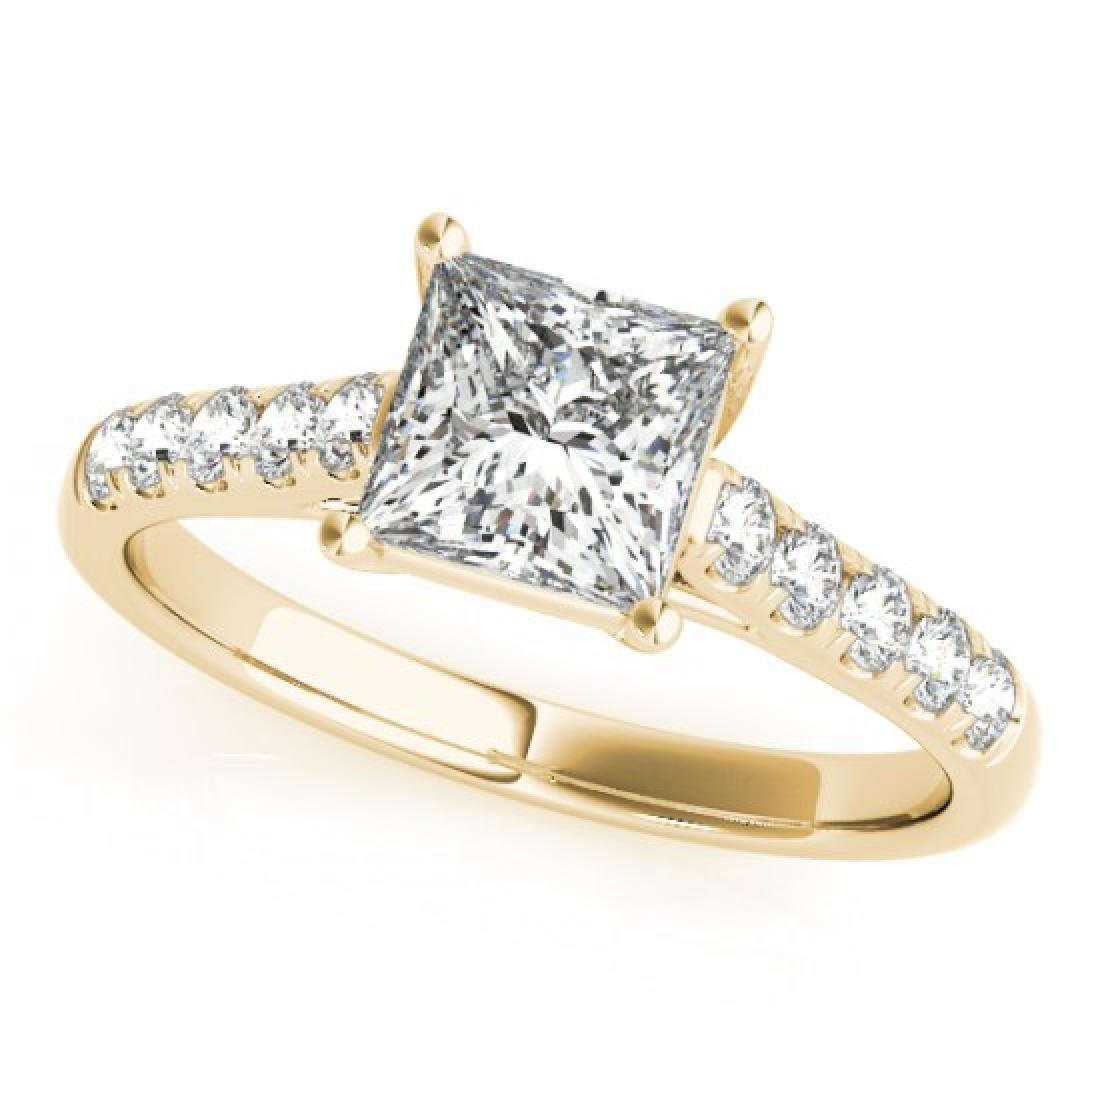 1.3 CTW Certified VS/SI Princess Diamond Ring 14K